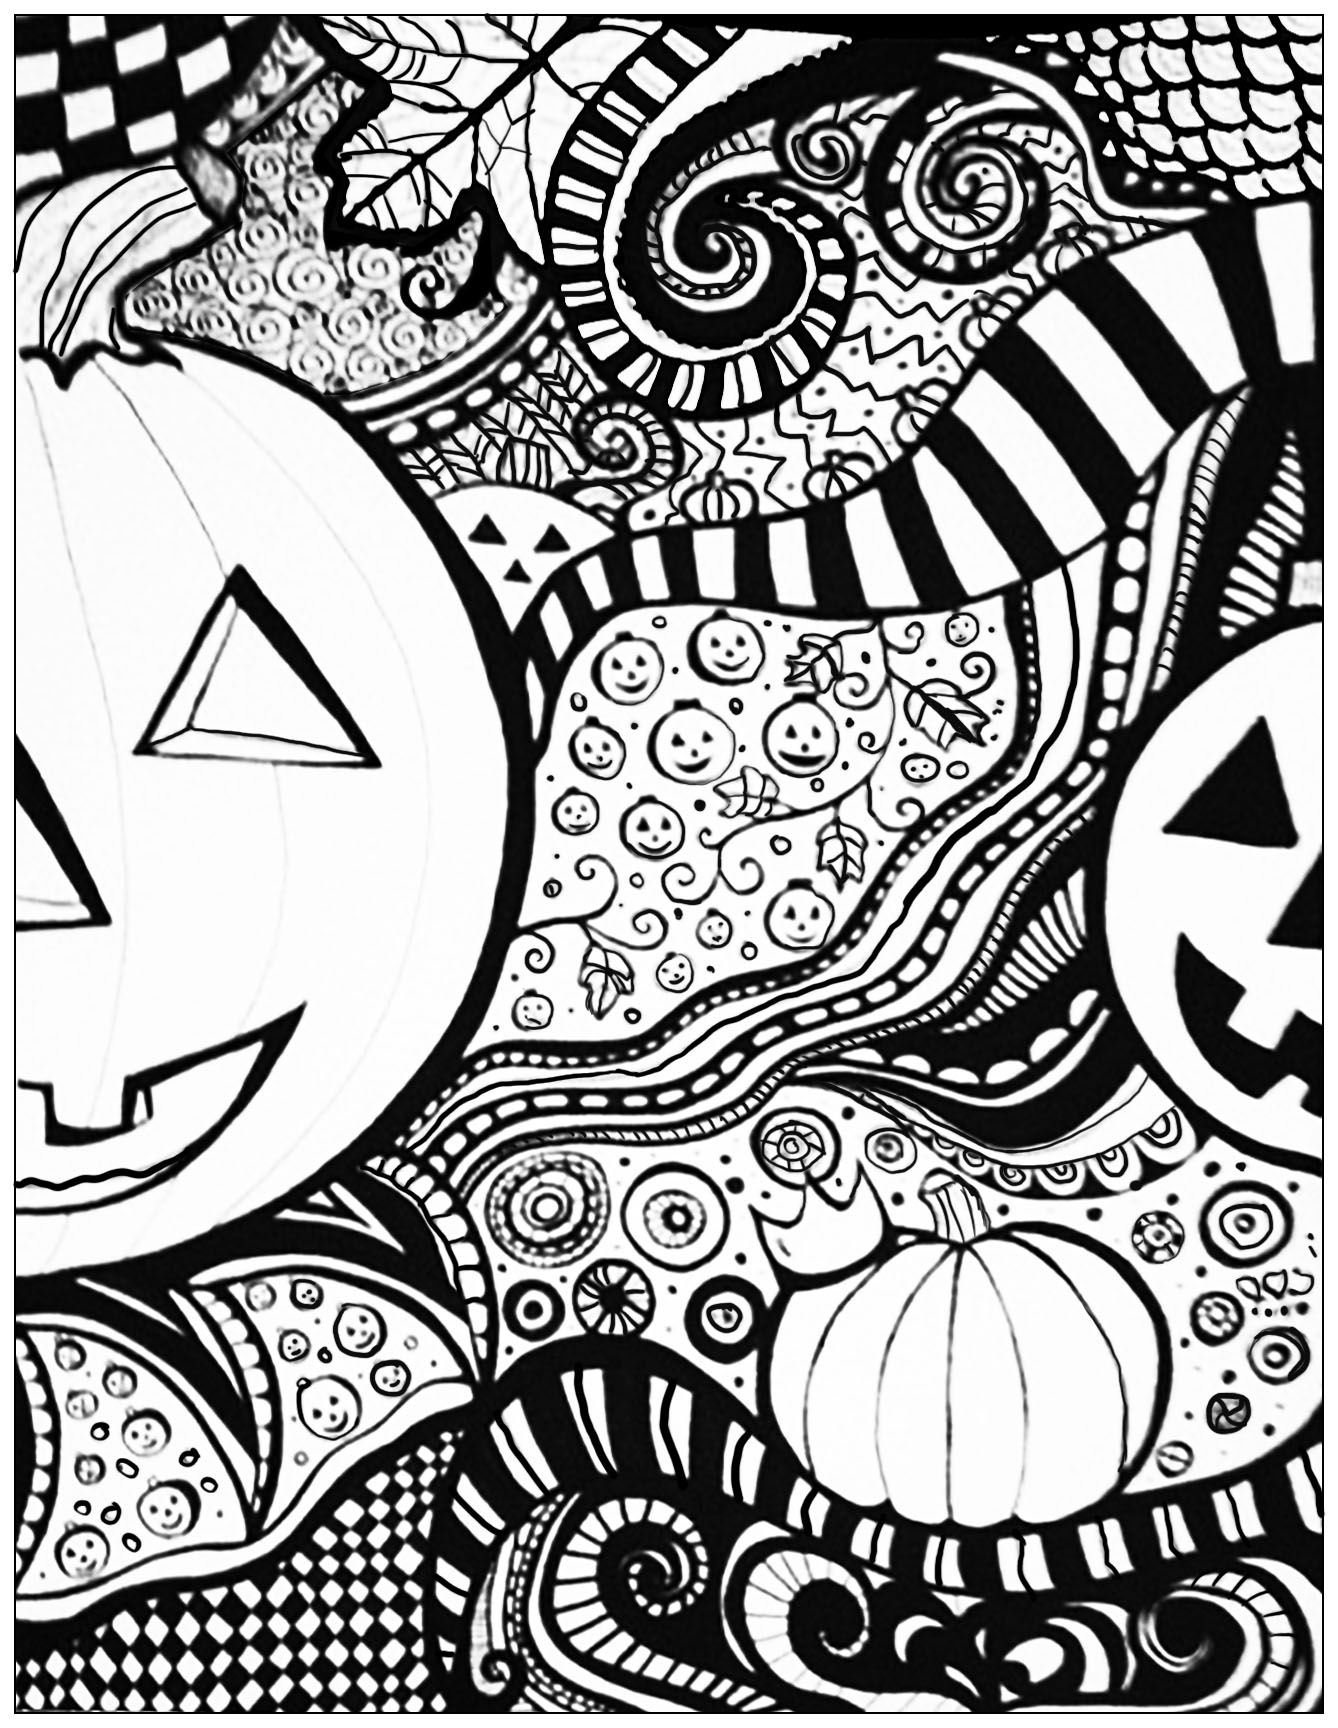 Halloween drawing to print & color, with a big pumpkin